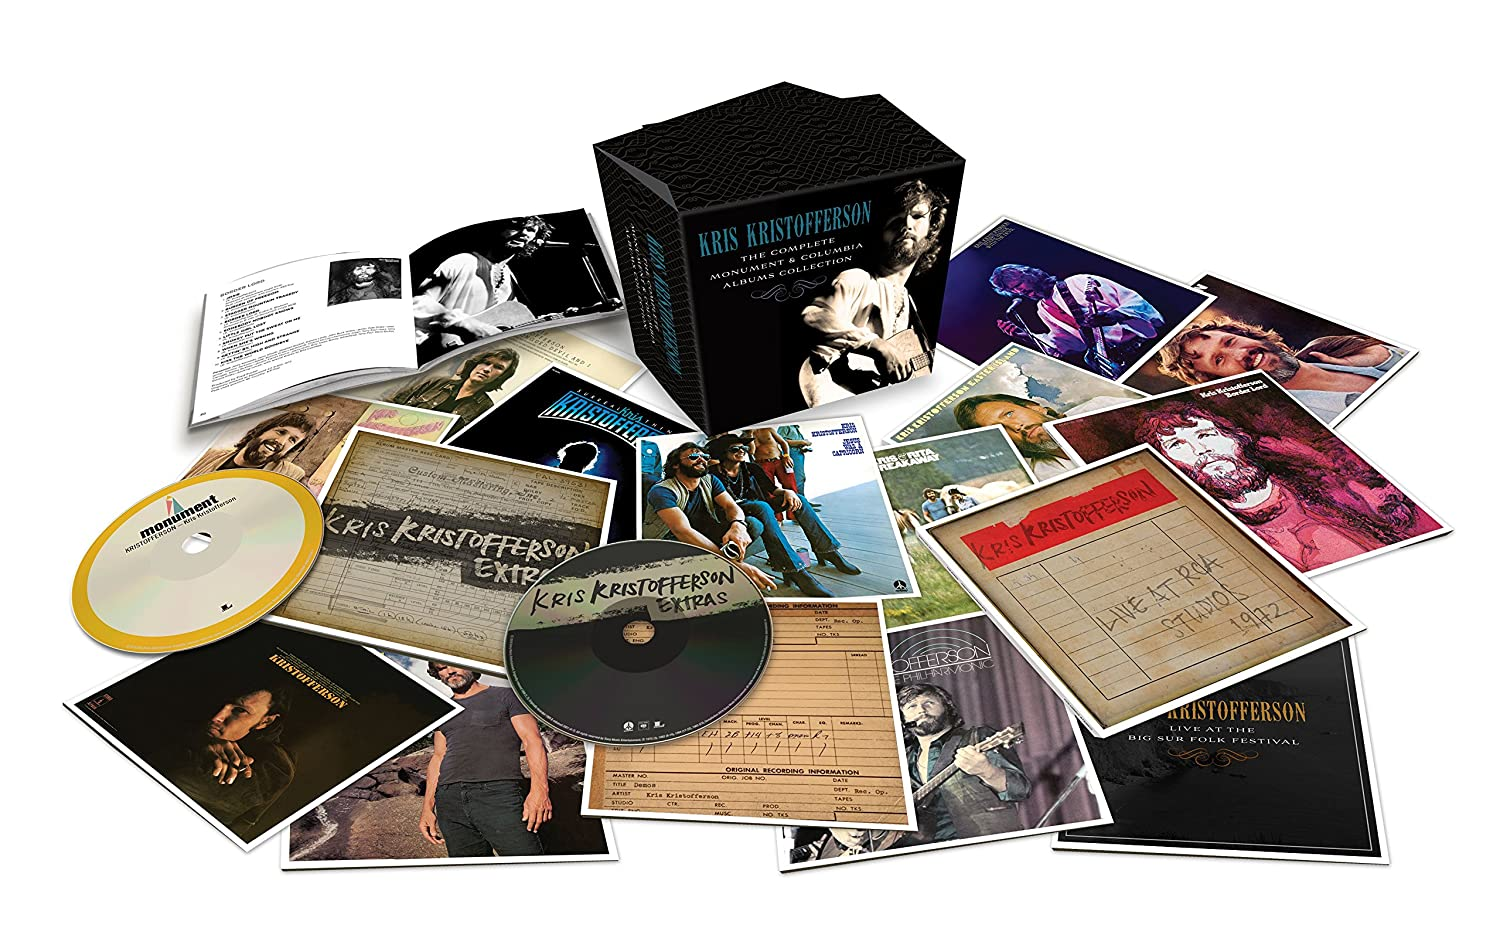 Kris Kristofferson  Theplete Monument & Columbia Album Collection   Amazon Music